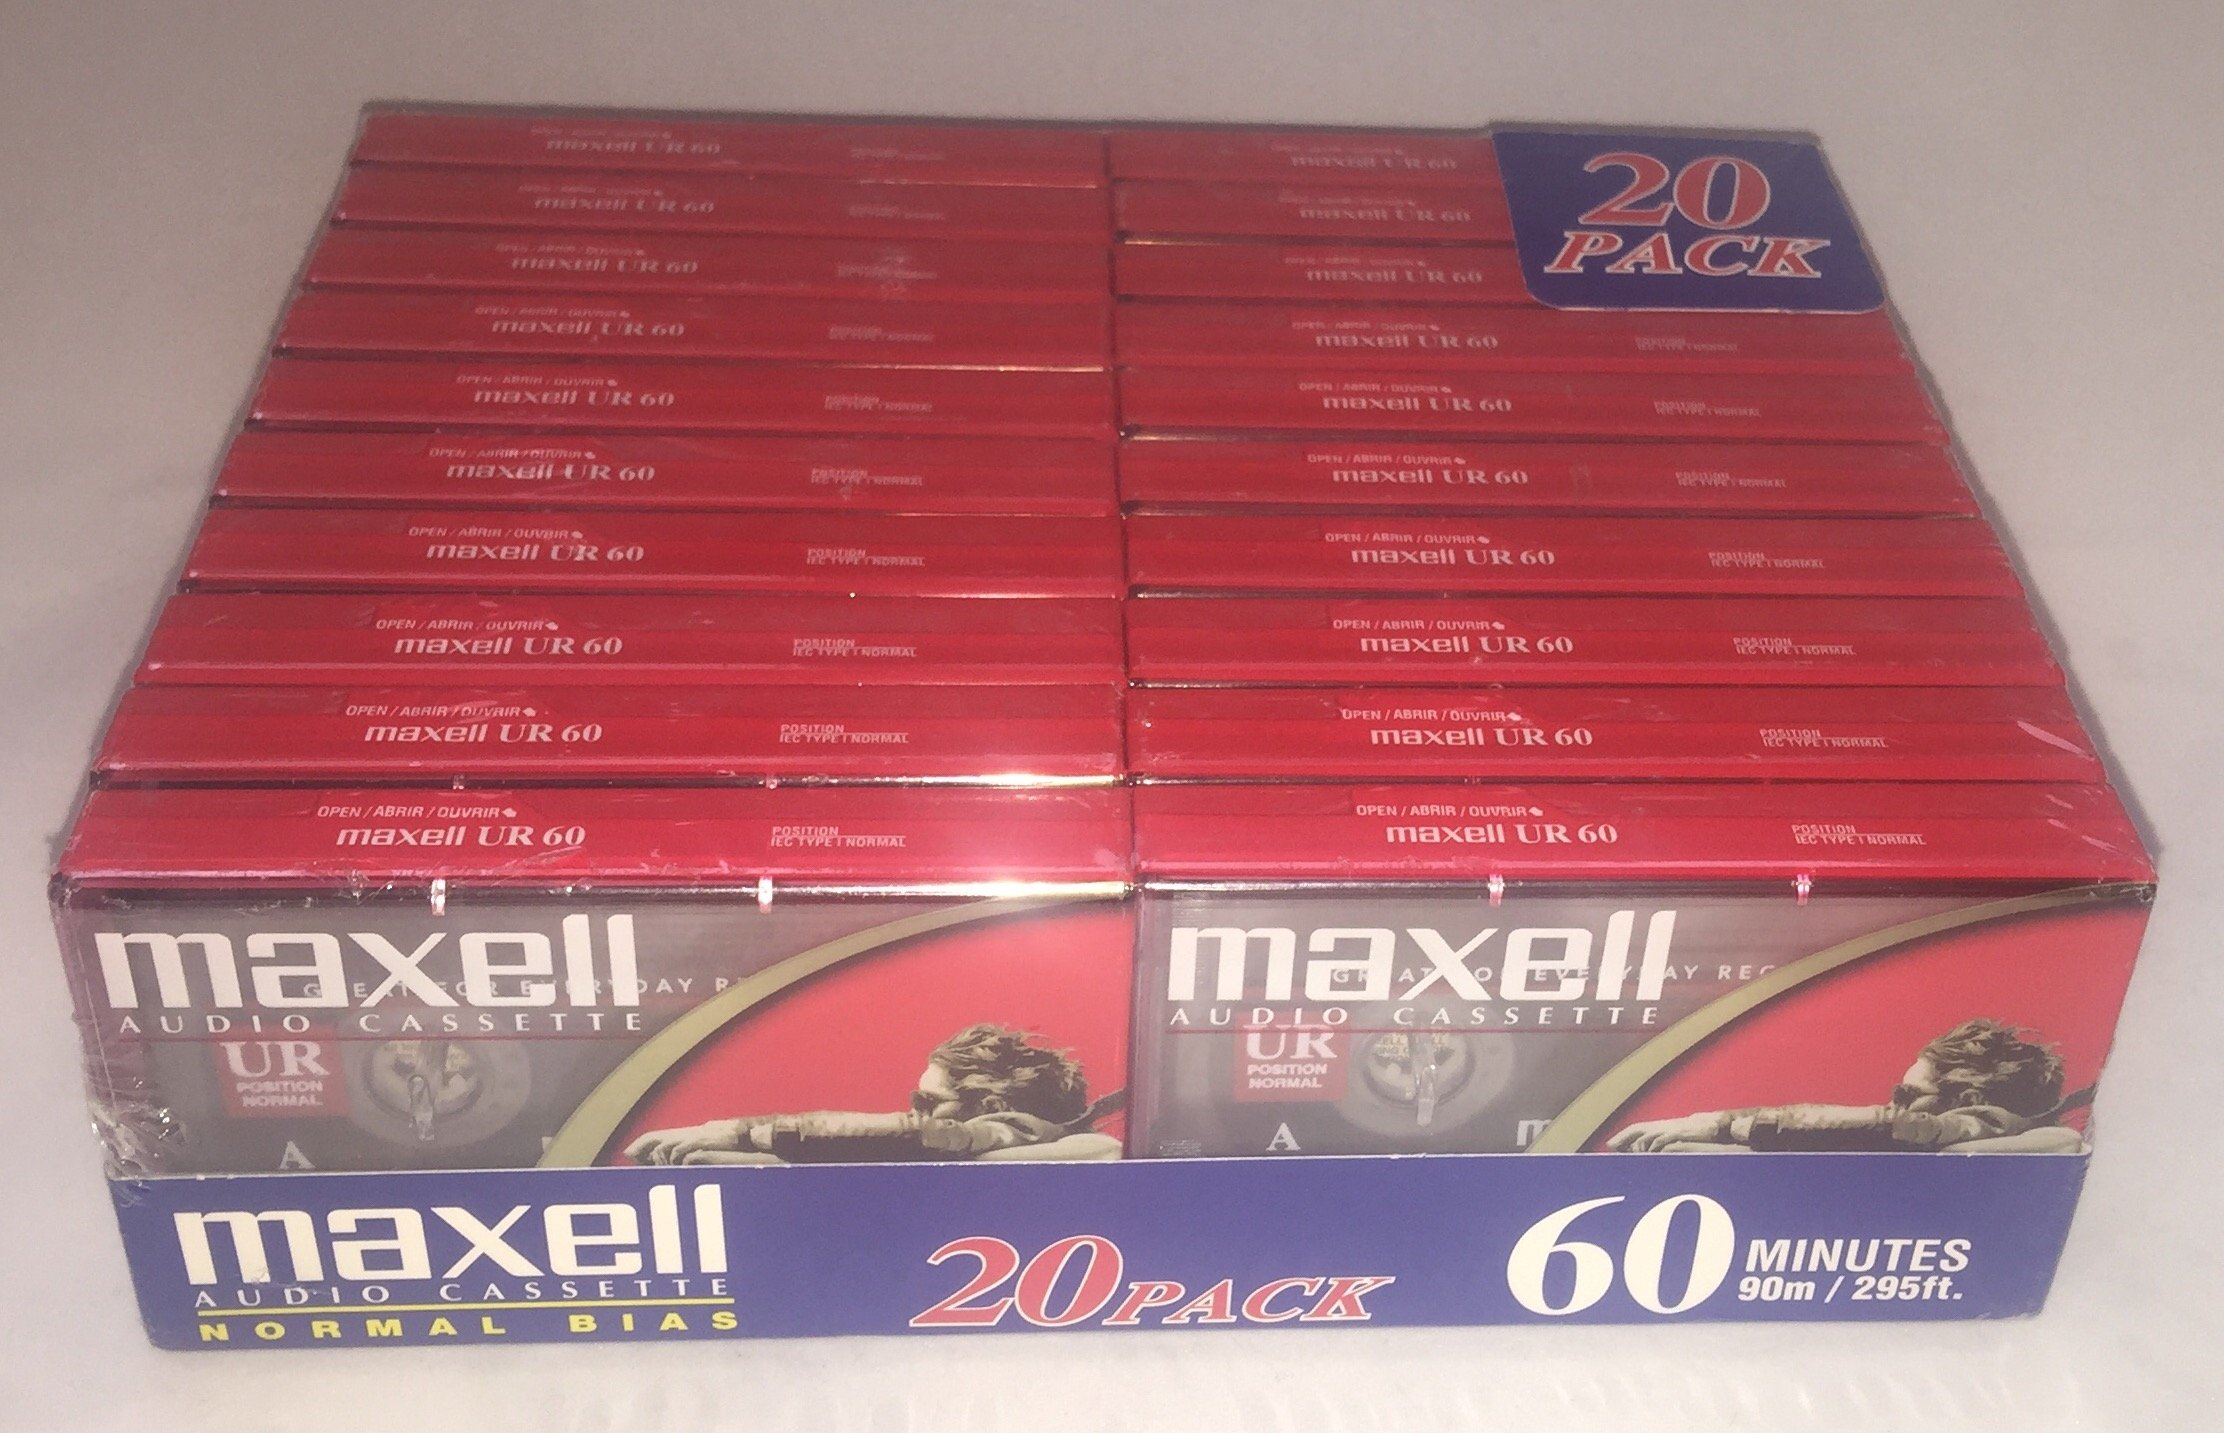 Maxell Audio Cassette UR 60 20 pack by Maxell